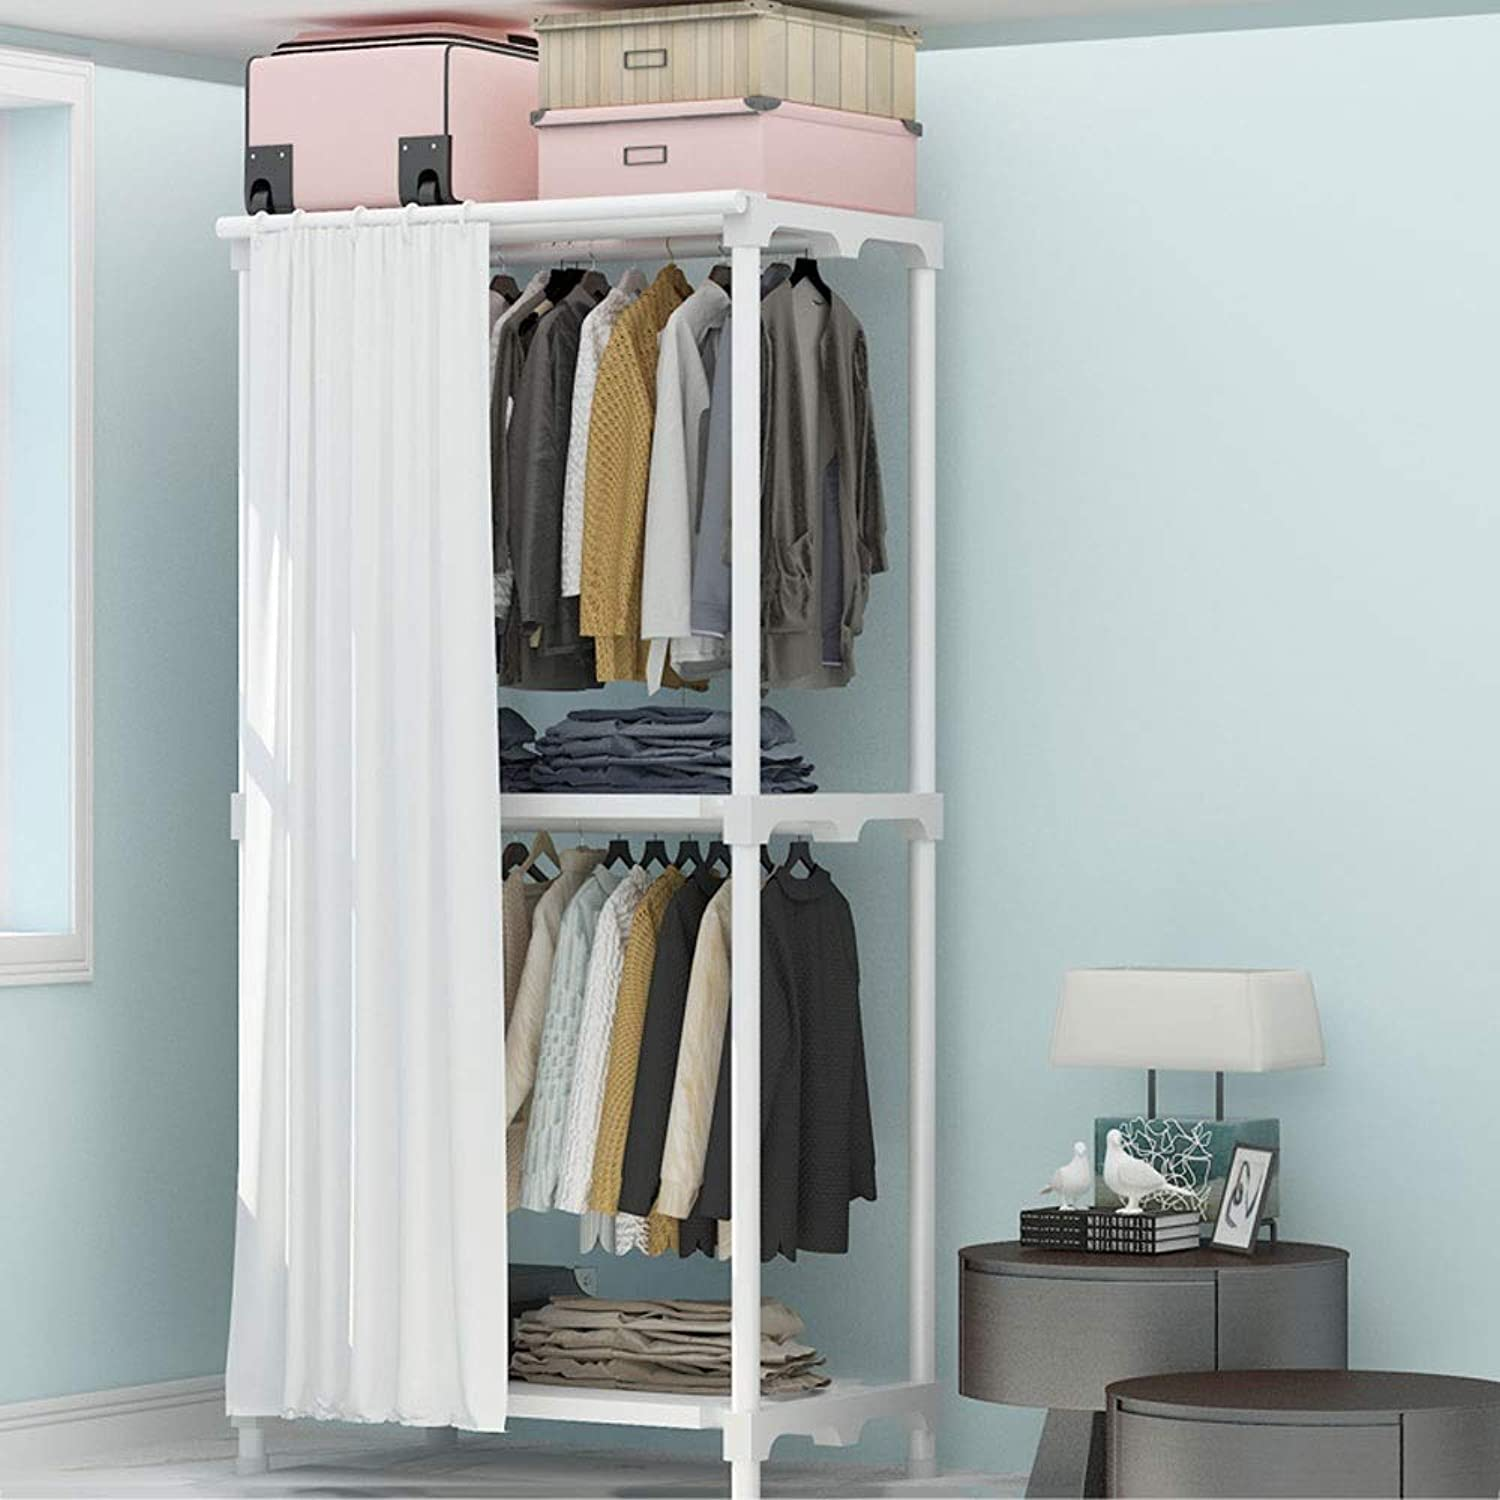 Simple Coat Rack with Curtains Bedroom Metal Hangers Floored Home Partition Racks 25mm Thick Tubes Large Capacity (color   White, Size   65x45x170cm)